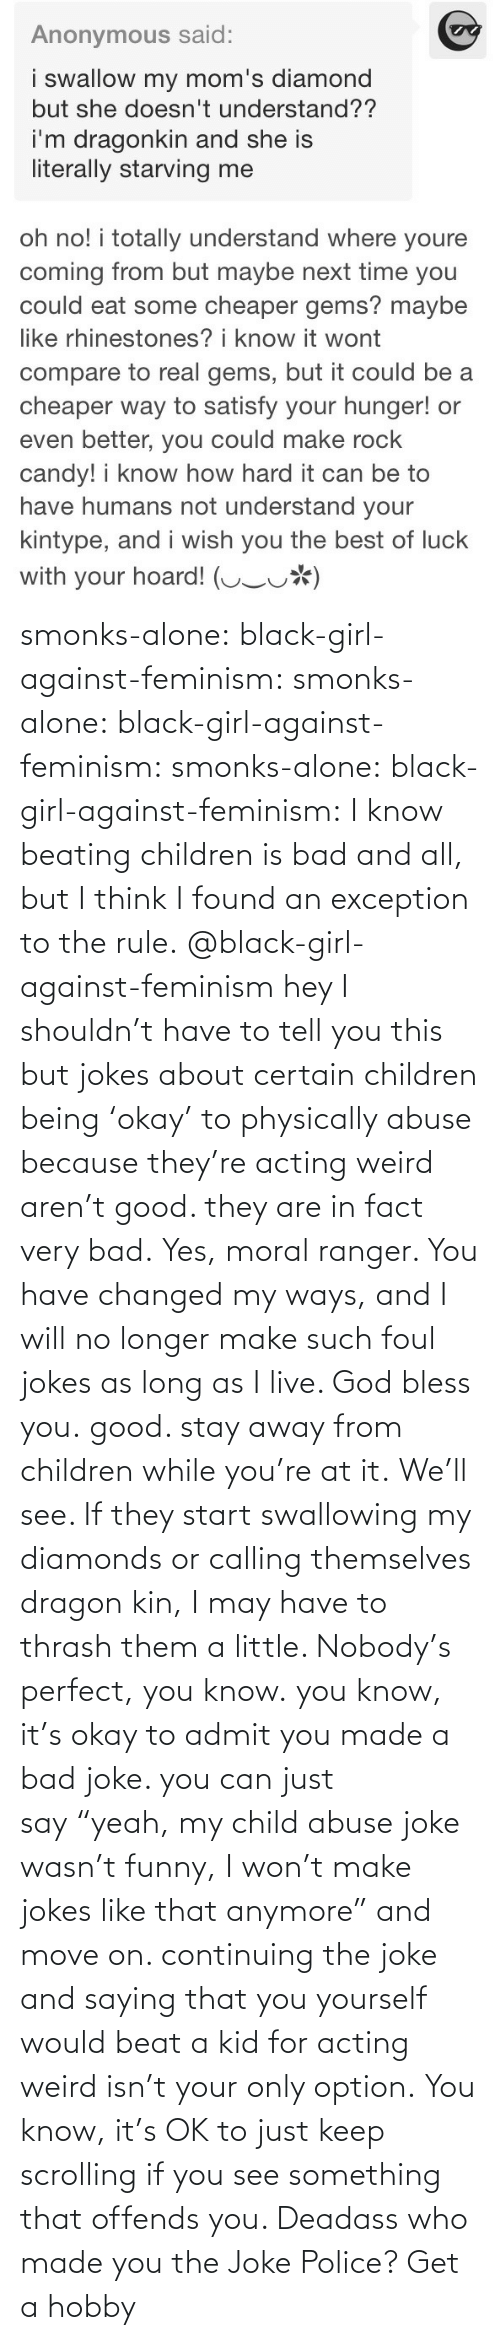 "beating: smonks-alone:  black-girl-against-feminism: smonks-alone:  black-girl-against-feminism:  smonks-alone:  black-girl-against-feminism: I know beating children is bad and all, but I think I found an exception to the rule. @black-girl-against-feminism hey I shouldn't have to tell you this but jokes about certain children being 'okay' to physically abuse because they're acting weird aren't good. they are in fact very bad.  Yes, moral ranger. You have changed my ways, and I will no longer make such foul jokes as long as I live. God bless you.  good. stay away from children while you're at it.  We'll see. If they start swallowing my diamonds or calling themselves dragon kin, I may have to thrash them a little. Nobody's perfect, you know.  you know, it's okay to admit you made a bad joke. you can just say ""yeah, my child abuse joke wasn't funny, I won't make jokes like that anymore"" and move on. continuing the joke and saying that you yourself would beat a kid for acting weird isn't your only option.   You know, it's OK to just keep scrolling if you see something that offends you. Deadass who made you the Joke Police? Get a hobby"